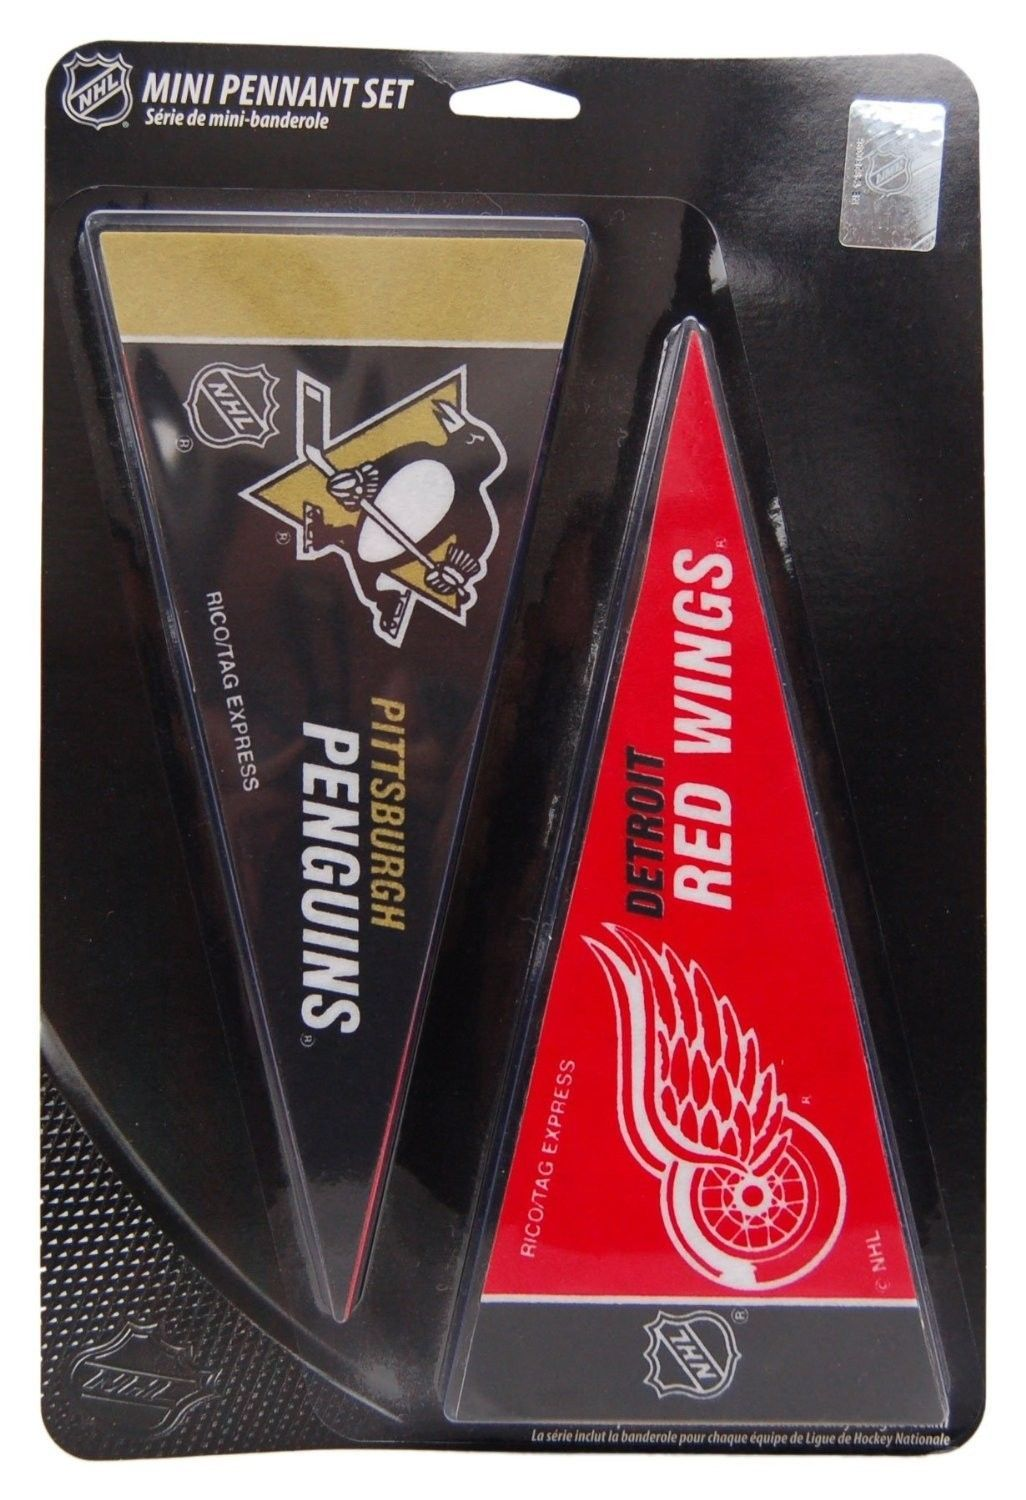 "NHL HOCKEY 30 TEAM LOGO FELT MINI PENNANTS SET 4"" X 9"" OFFICIALLY LICENSED"